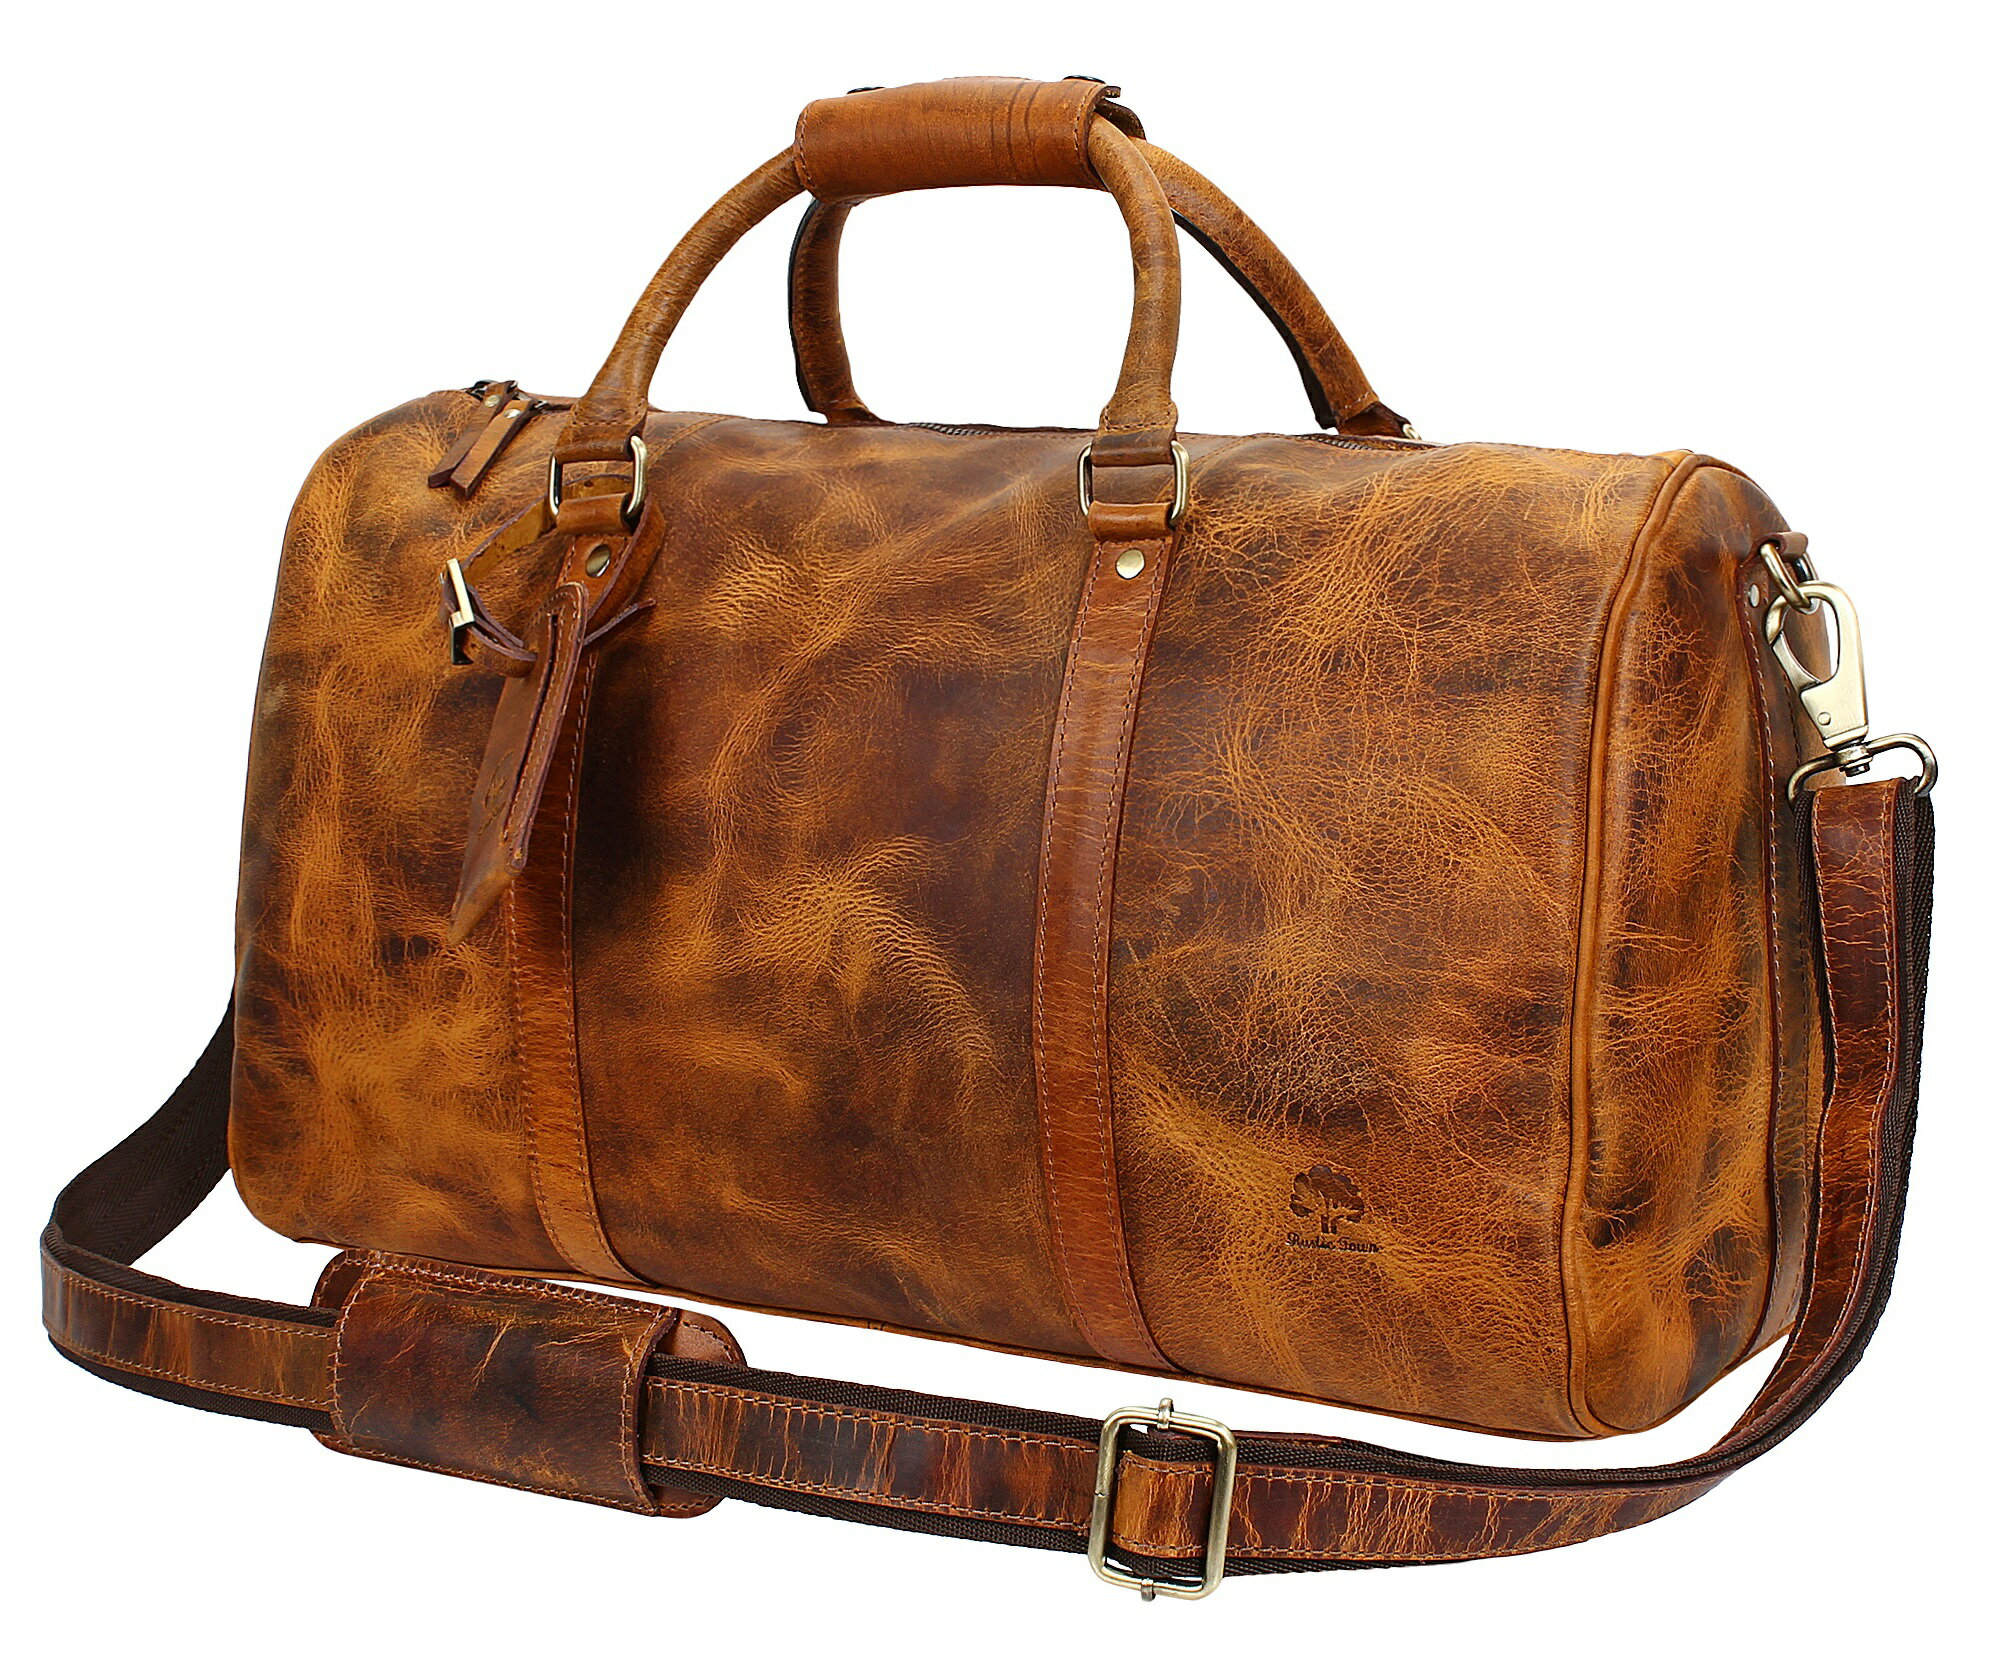 e312a30f0a1f Rustic Town 20 inch Leather Travel Duffel Bag ~ Special Pockets Inside ~  Gym Overnight Weekend